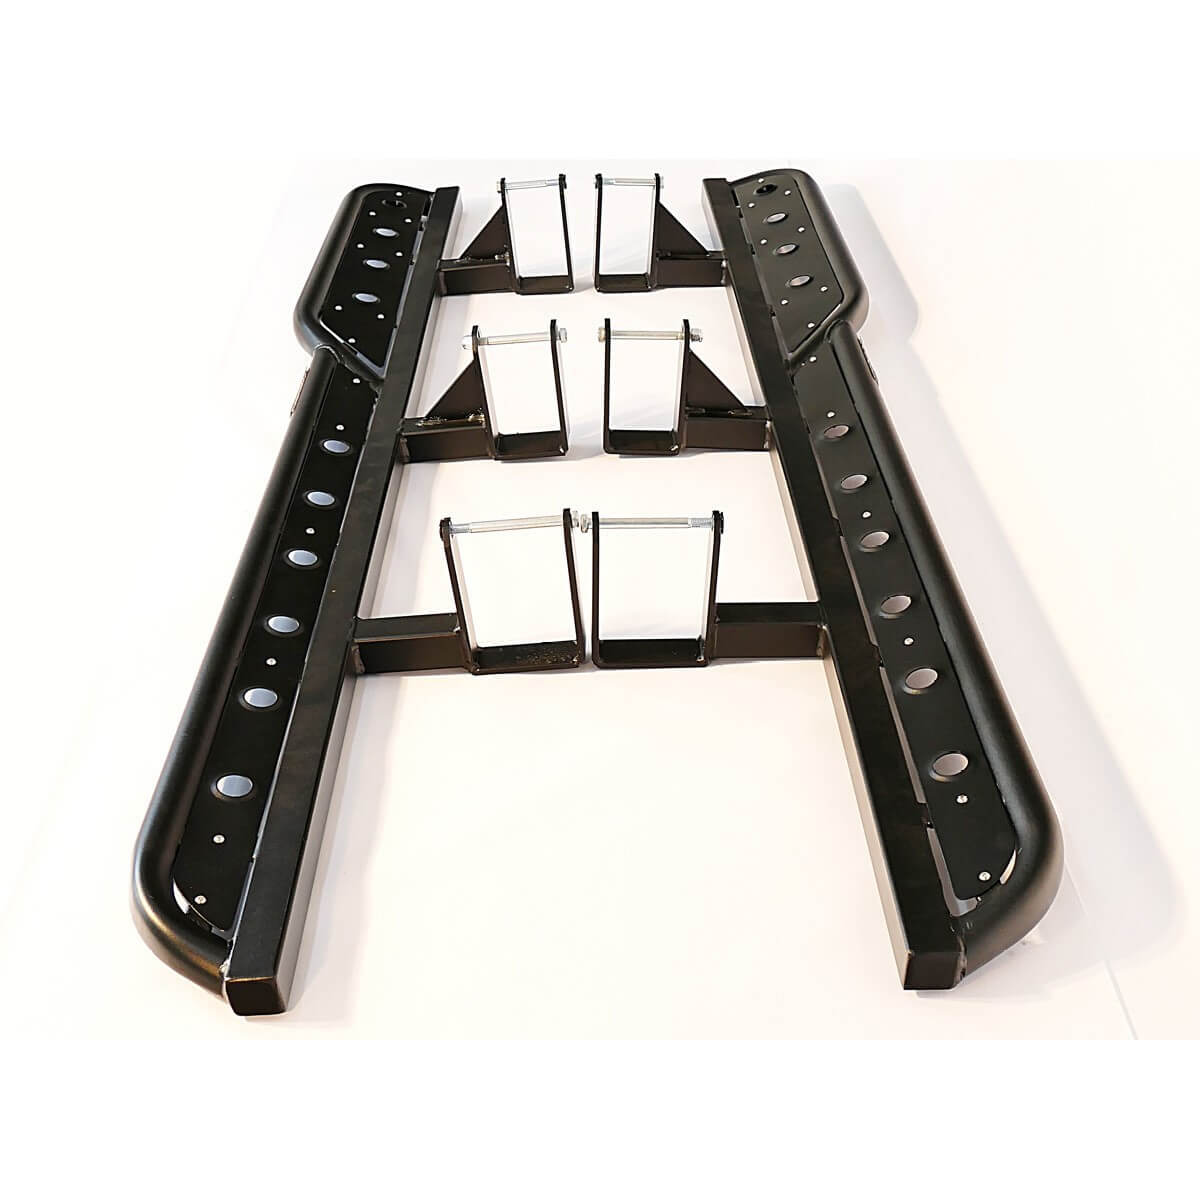 Legendex Rock Slider Suitable for Ford Ranger Raptor